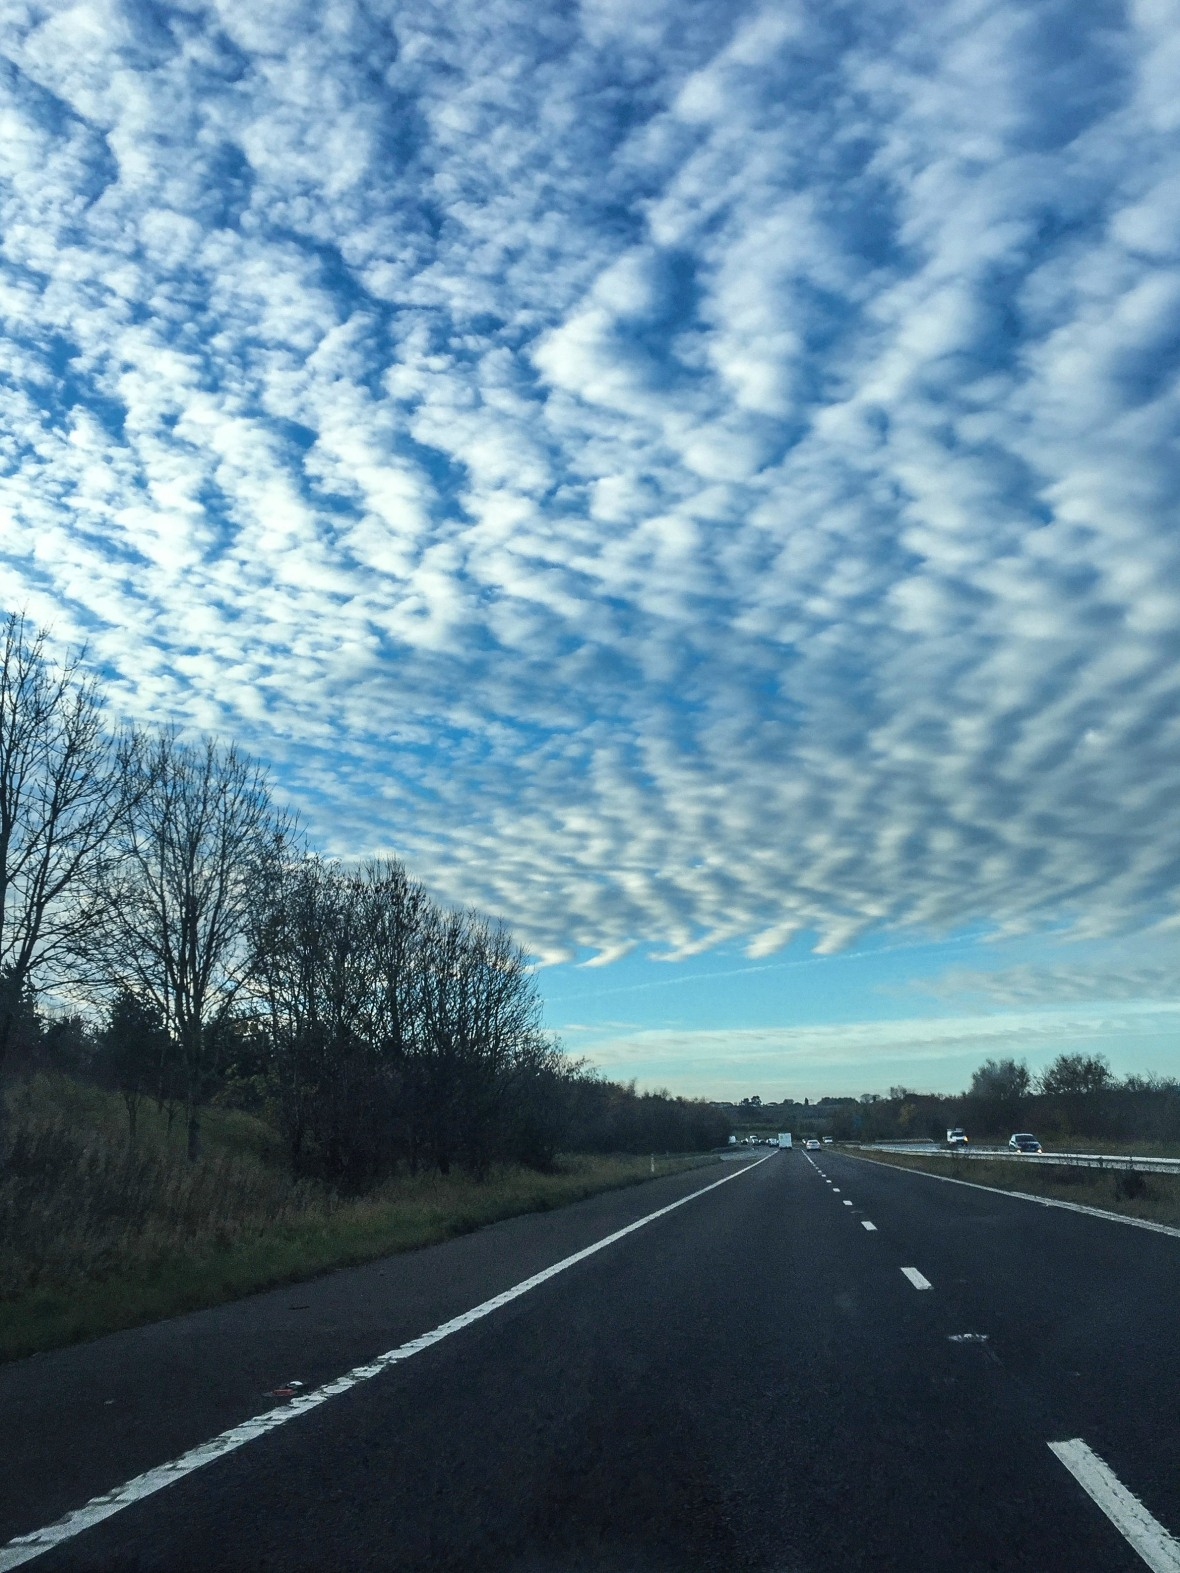 Setting off on the A1 under a zigzag sky